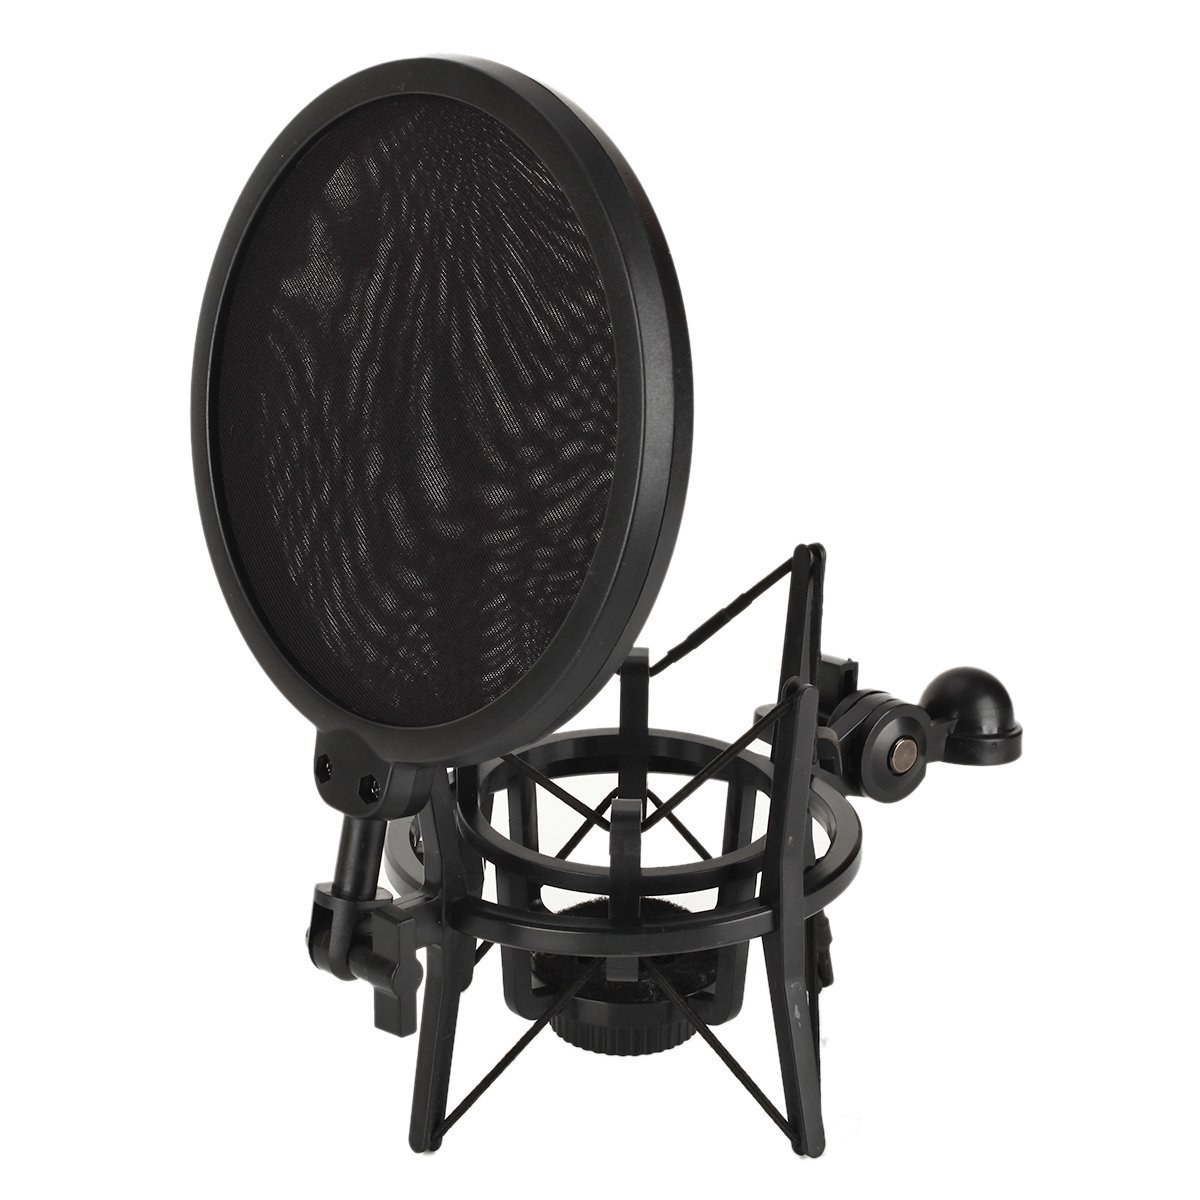 other computers networking studio microphone mic shock mount with pop filter mic windscreen. Black Bedroom Furniture Sets. Home Design Ideas